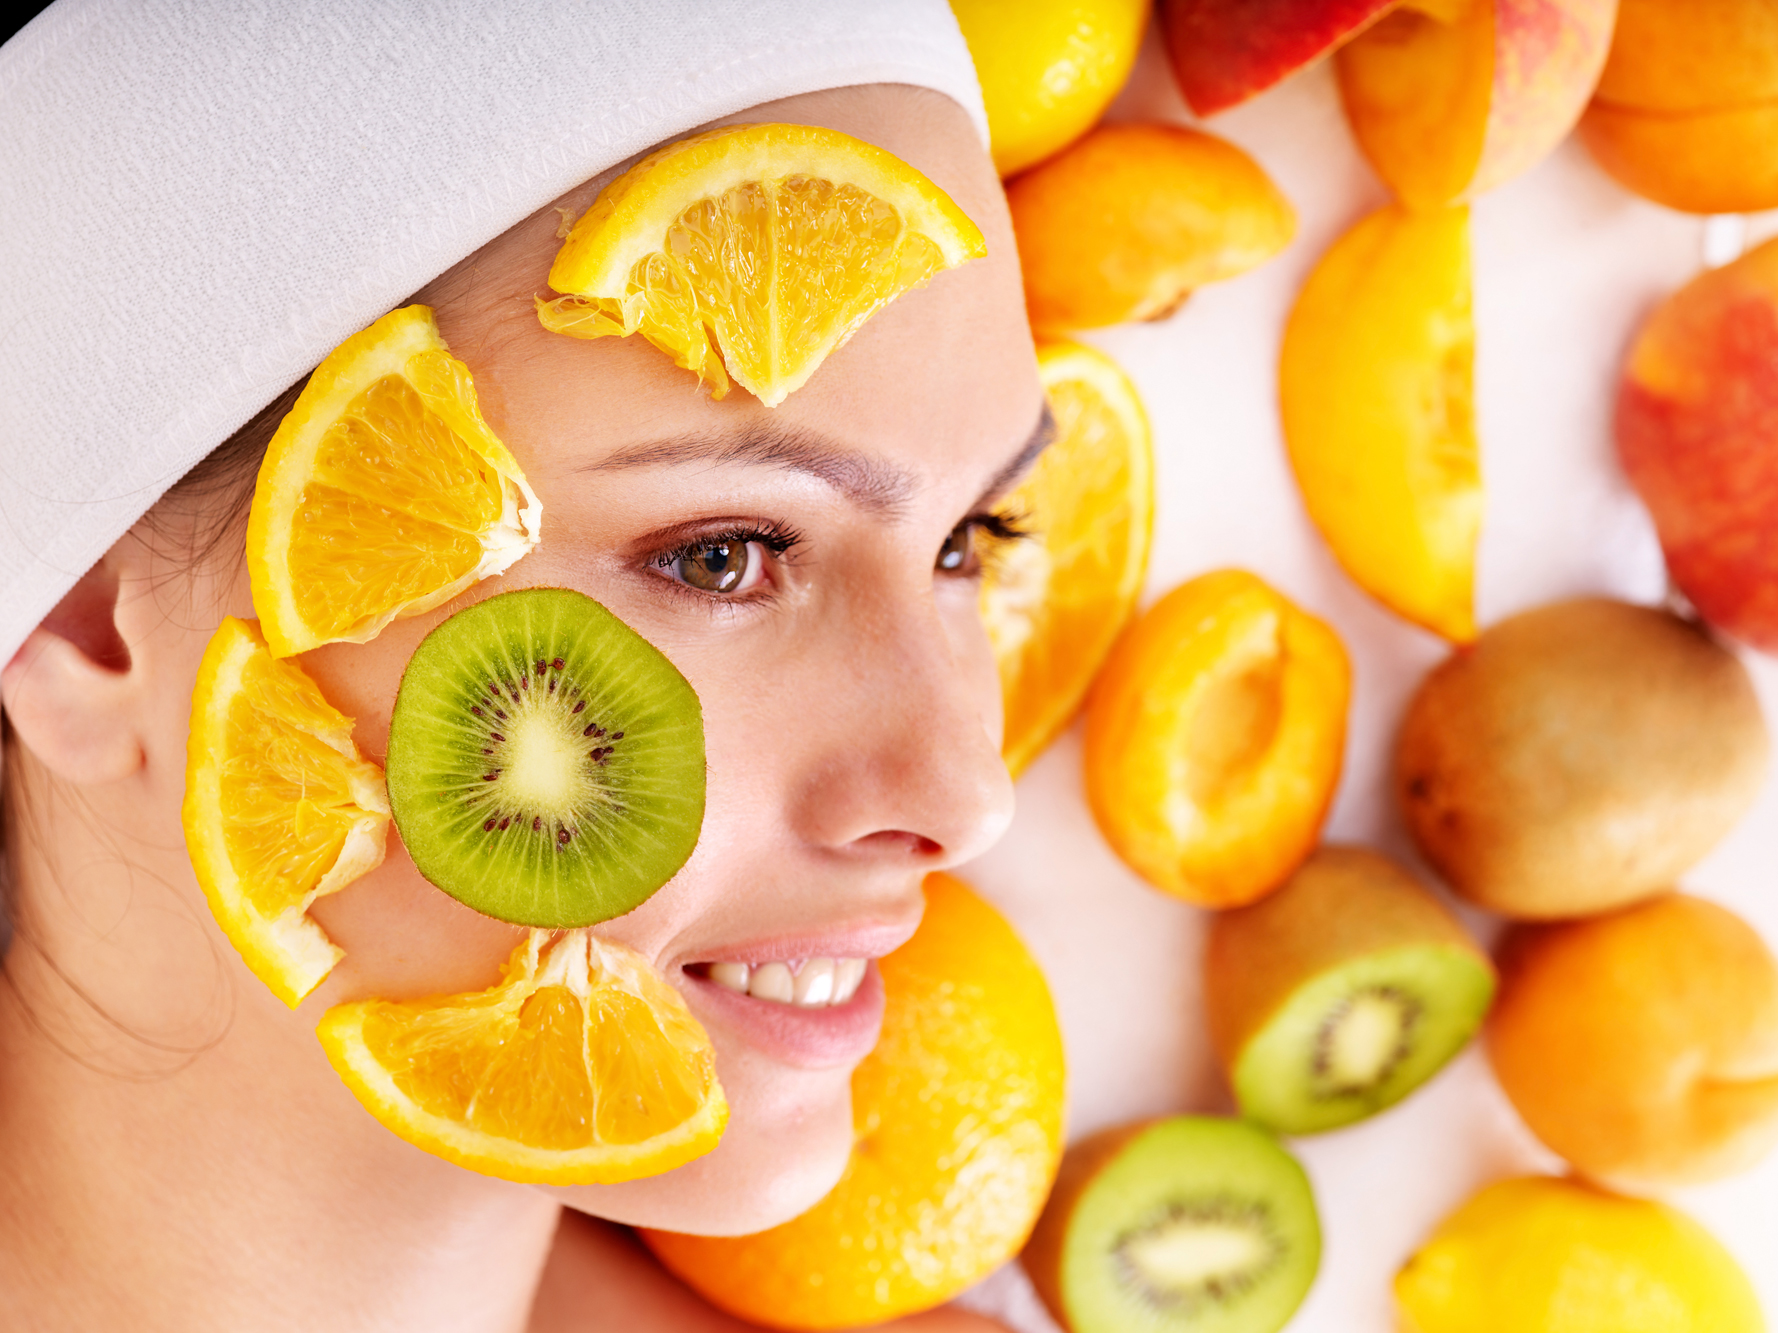 homemade tips for glowing skin